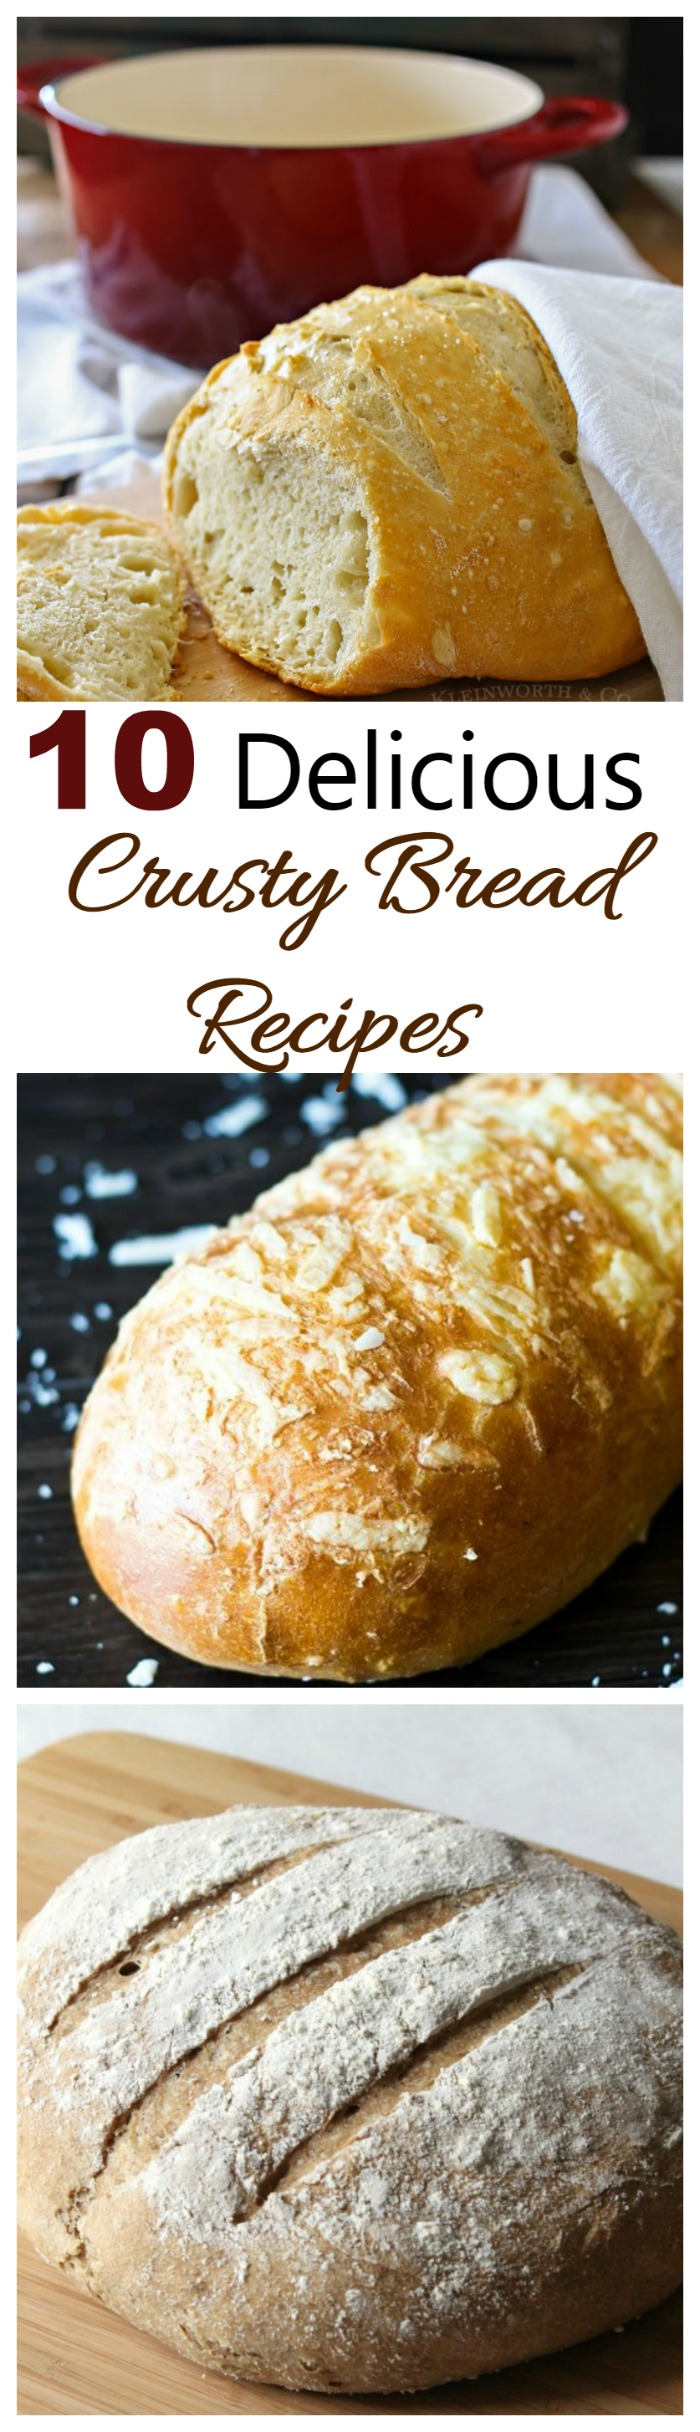 These crusty artisan breads are crunchy on the outside with a warm and flavorful center. They are easier to make than you might think!